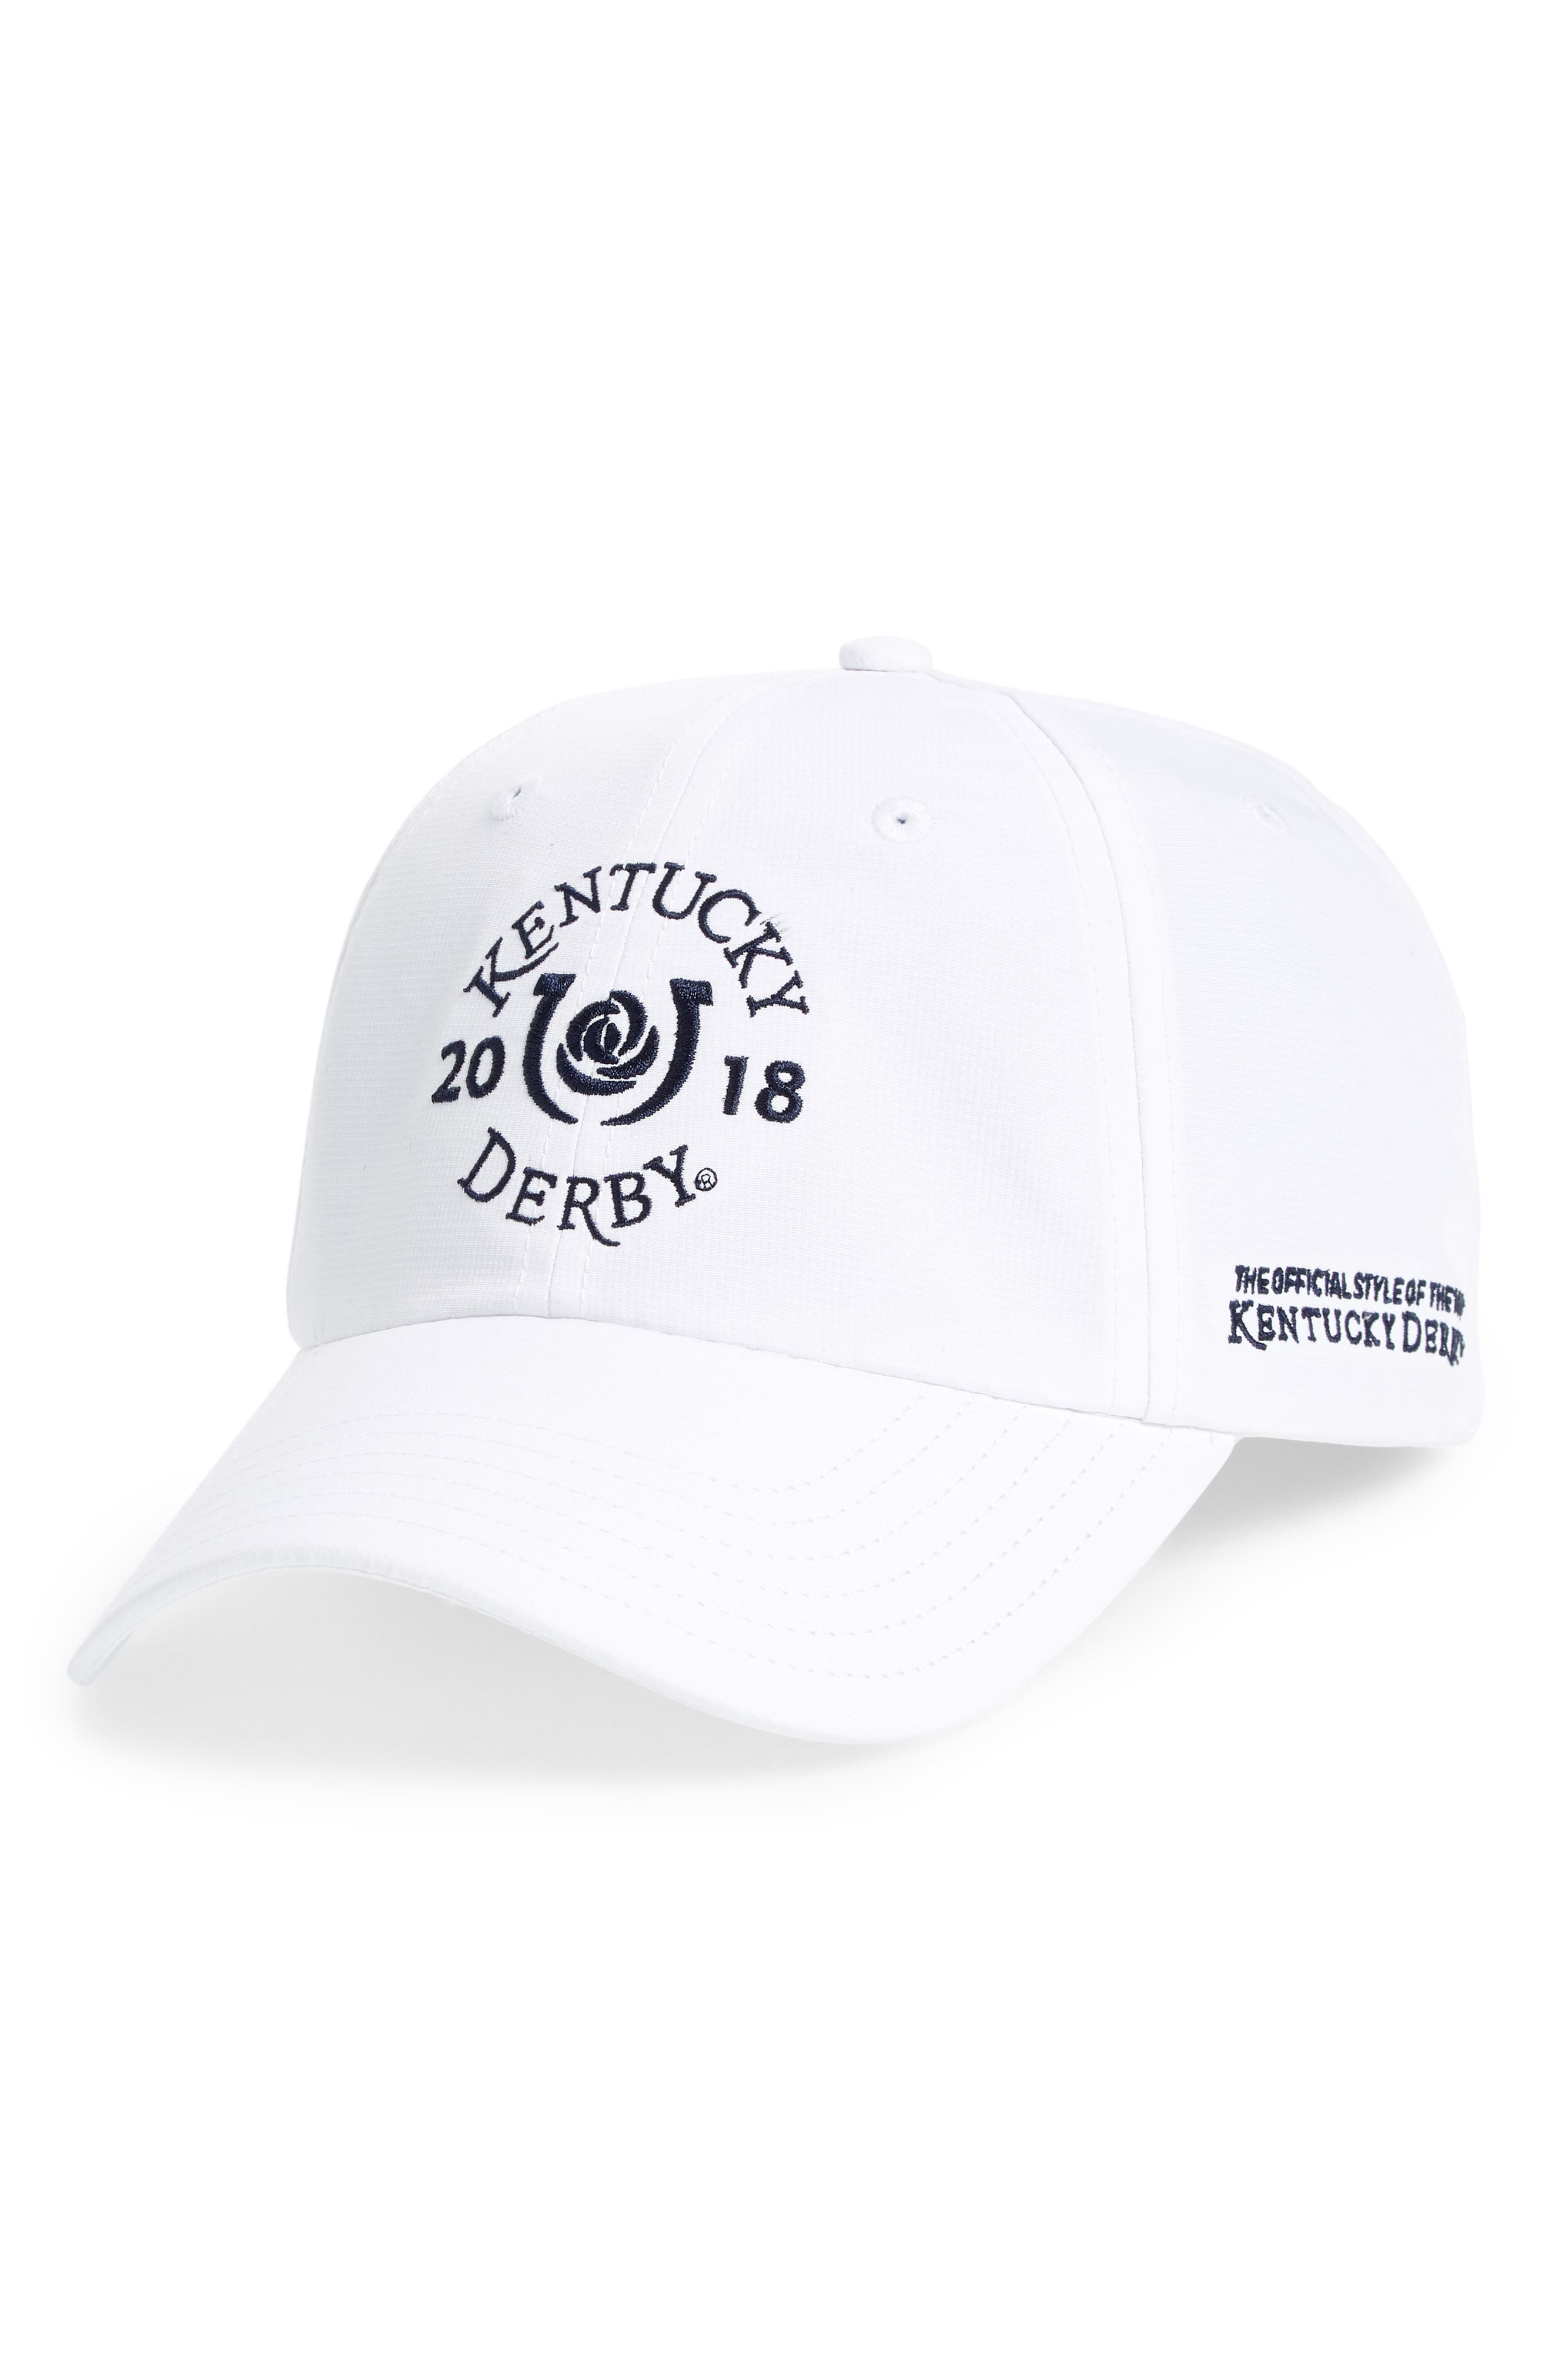 2018 Kentucky Derby<sup>®</sup> Garland of Roses Cap,                         Main,                         color, 100